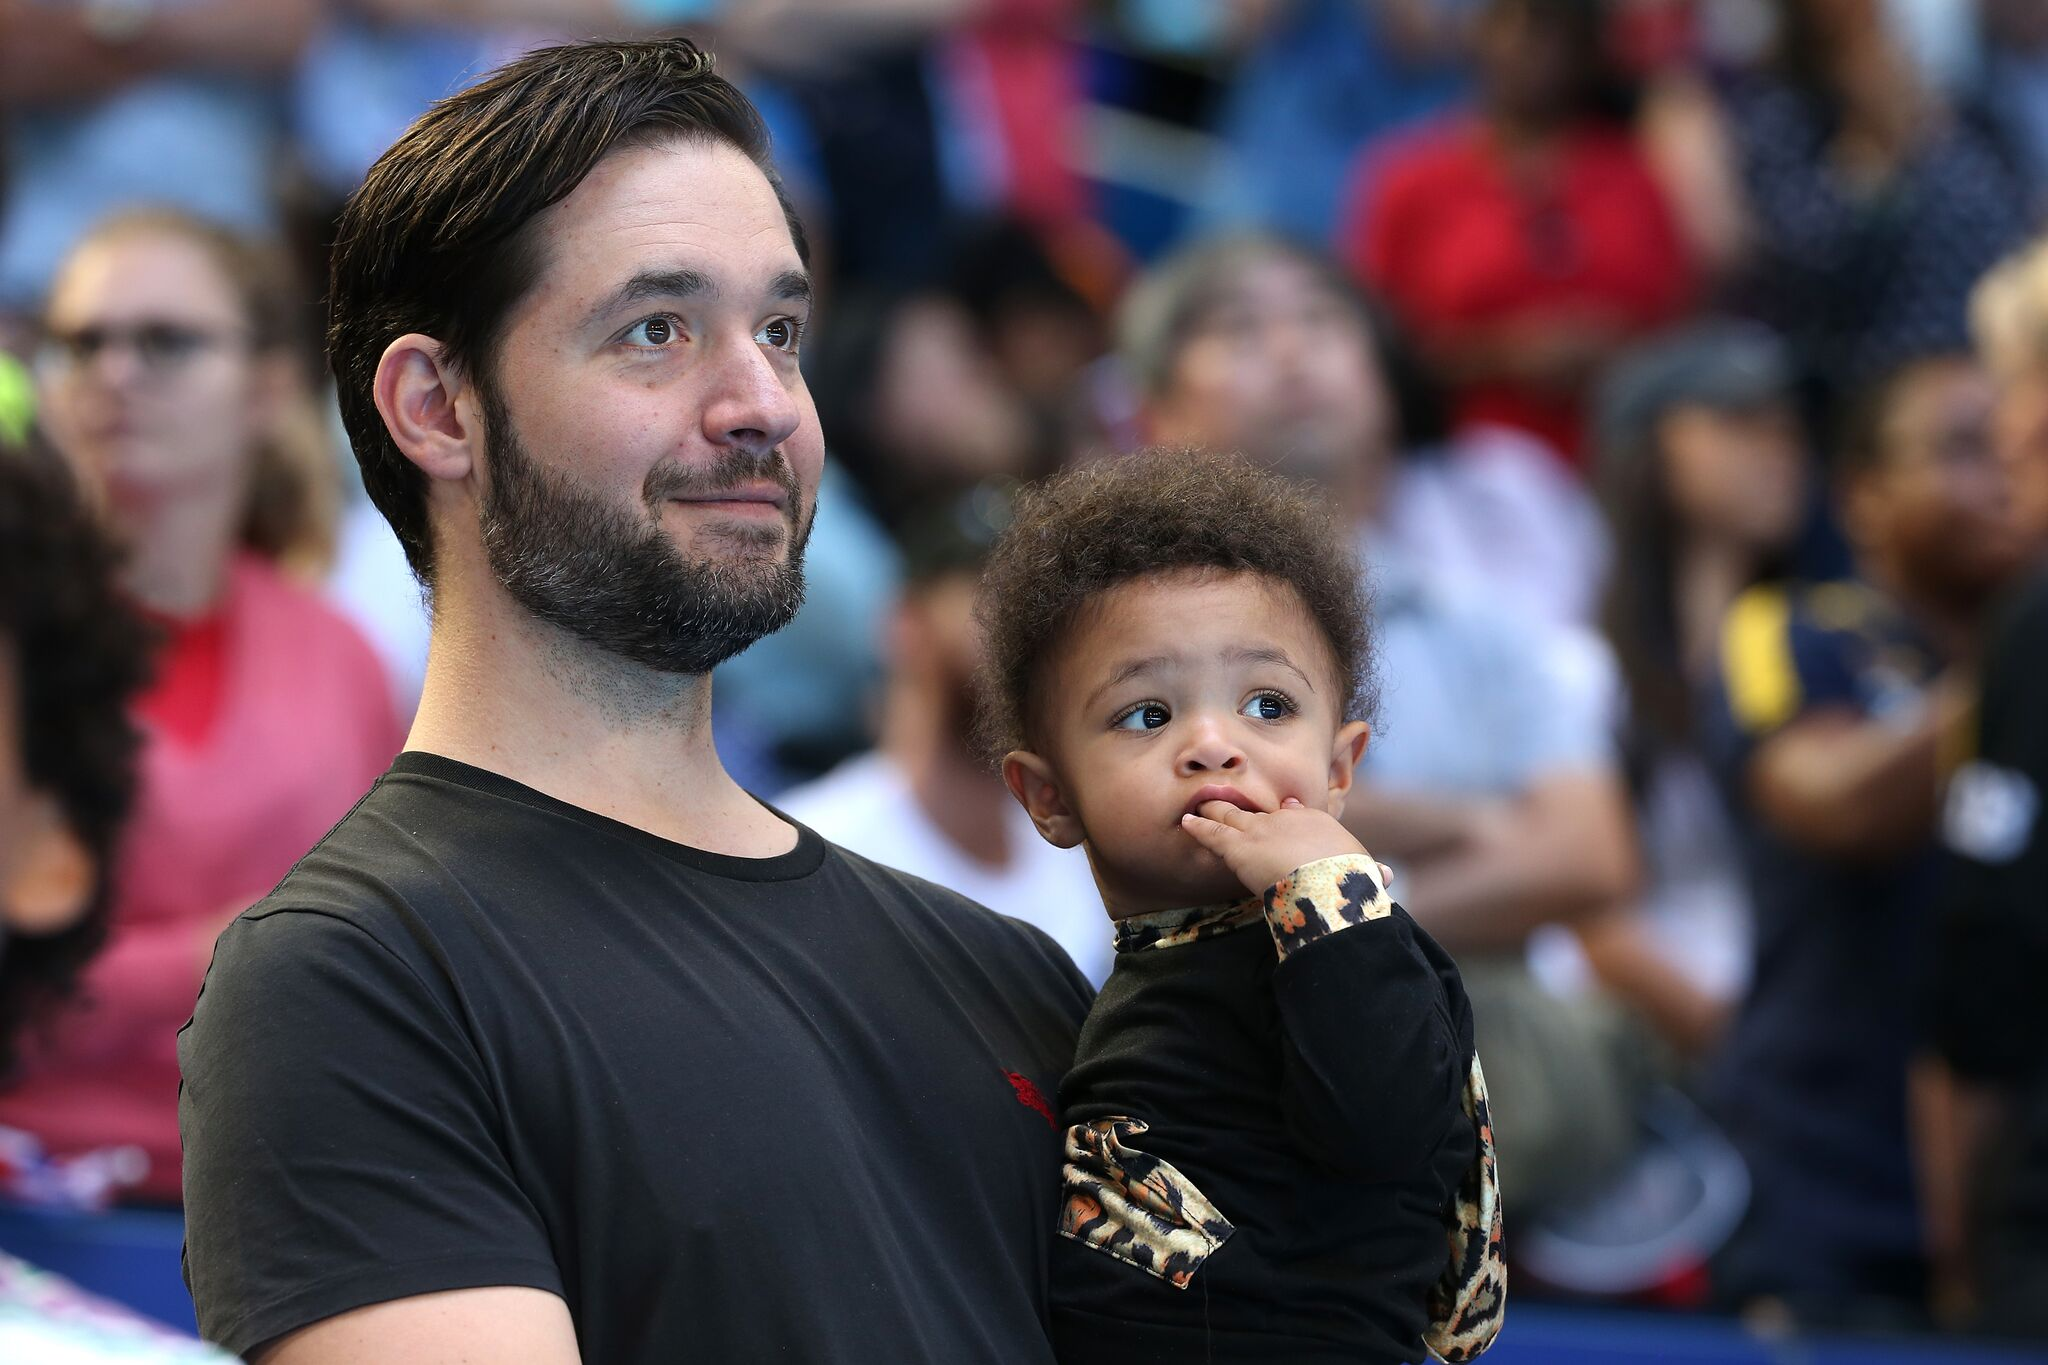 Serena Williams's husband Alexis Ohanian, holds their daughter Alexis Olympia Ohanian Jr. following the women's singles match | Getty Images / Global Images Ukraine